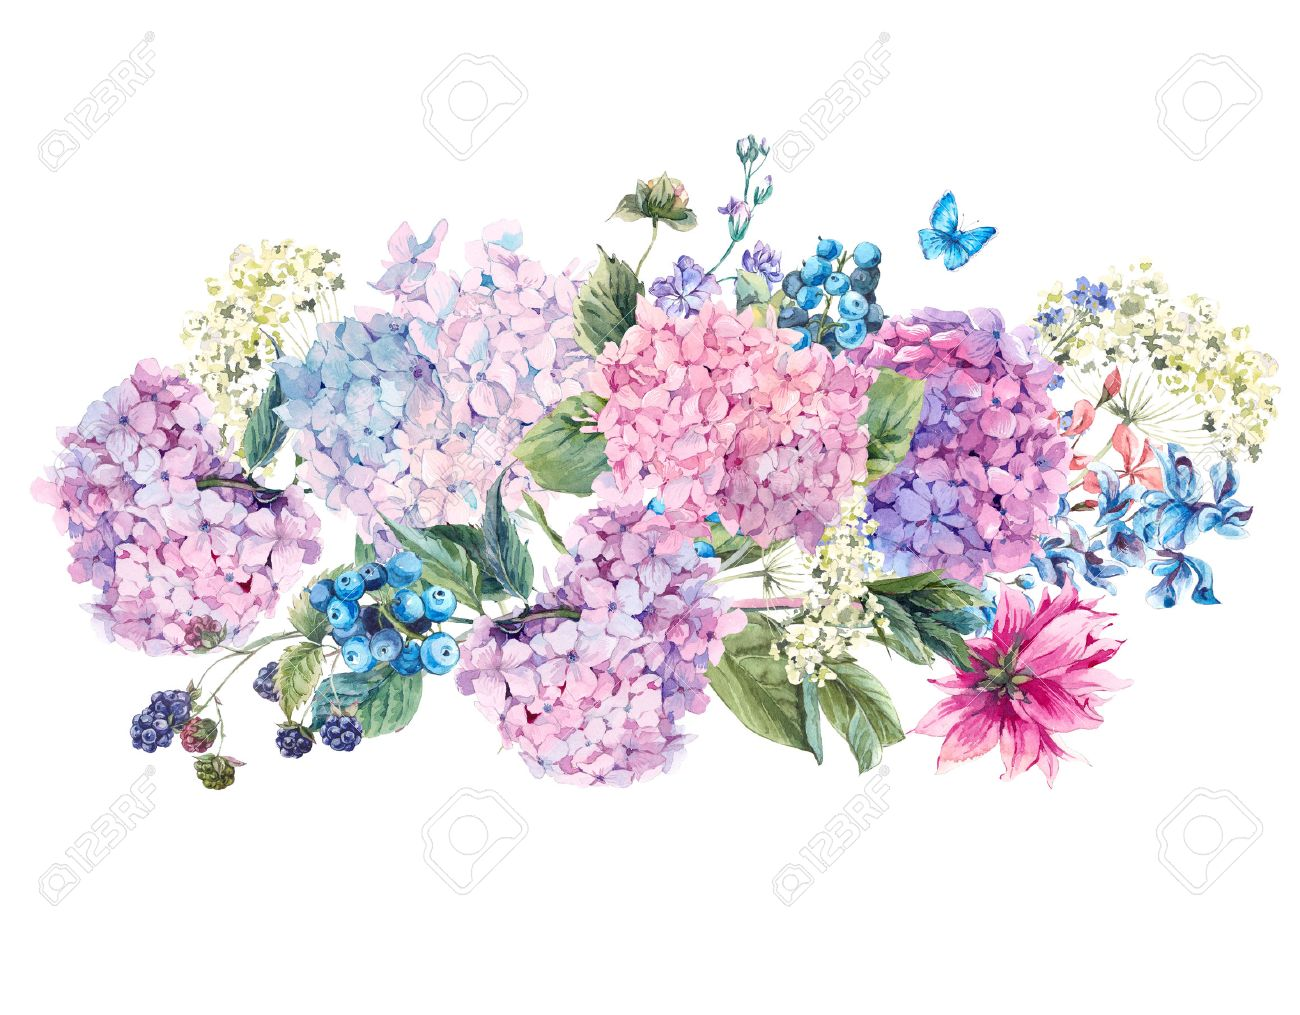 Summer Watercolor Vintage Floral bouquet with Blooming Hydrangea and garden flowers, Watercolor botanical natural hydrangea Illustration isolated on white - 59810384